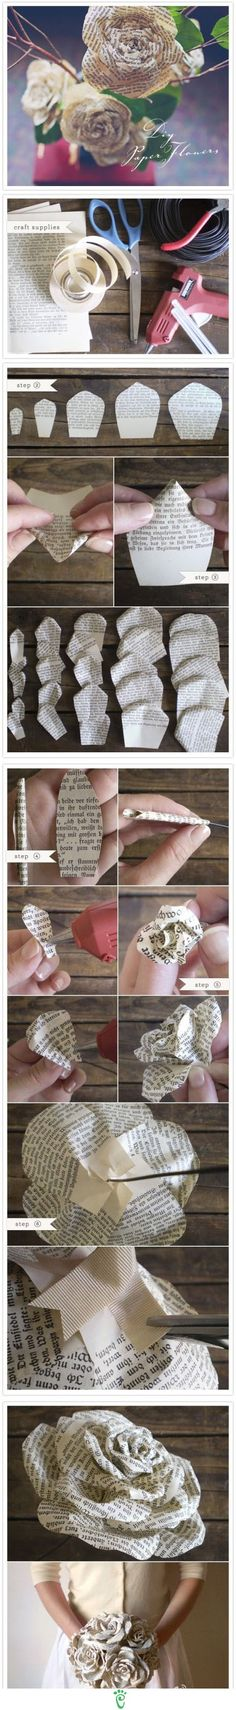 This could be so cool for a rehearsal bouquet if made with copies of old maps, historic photos and Sanborns